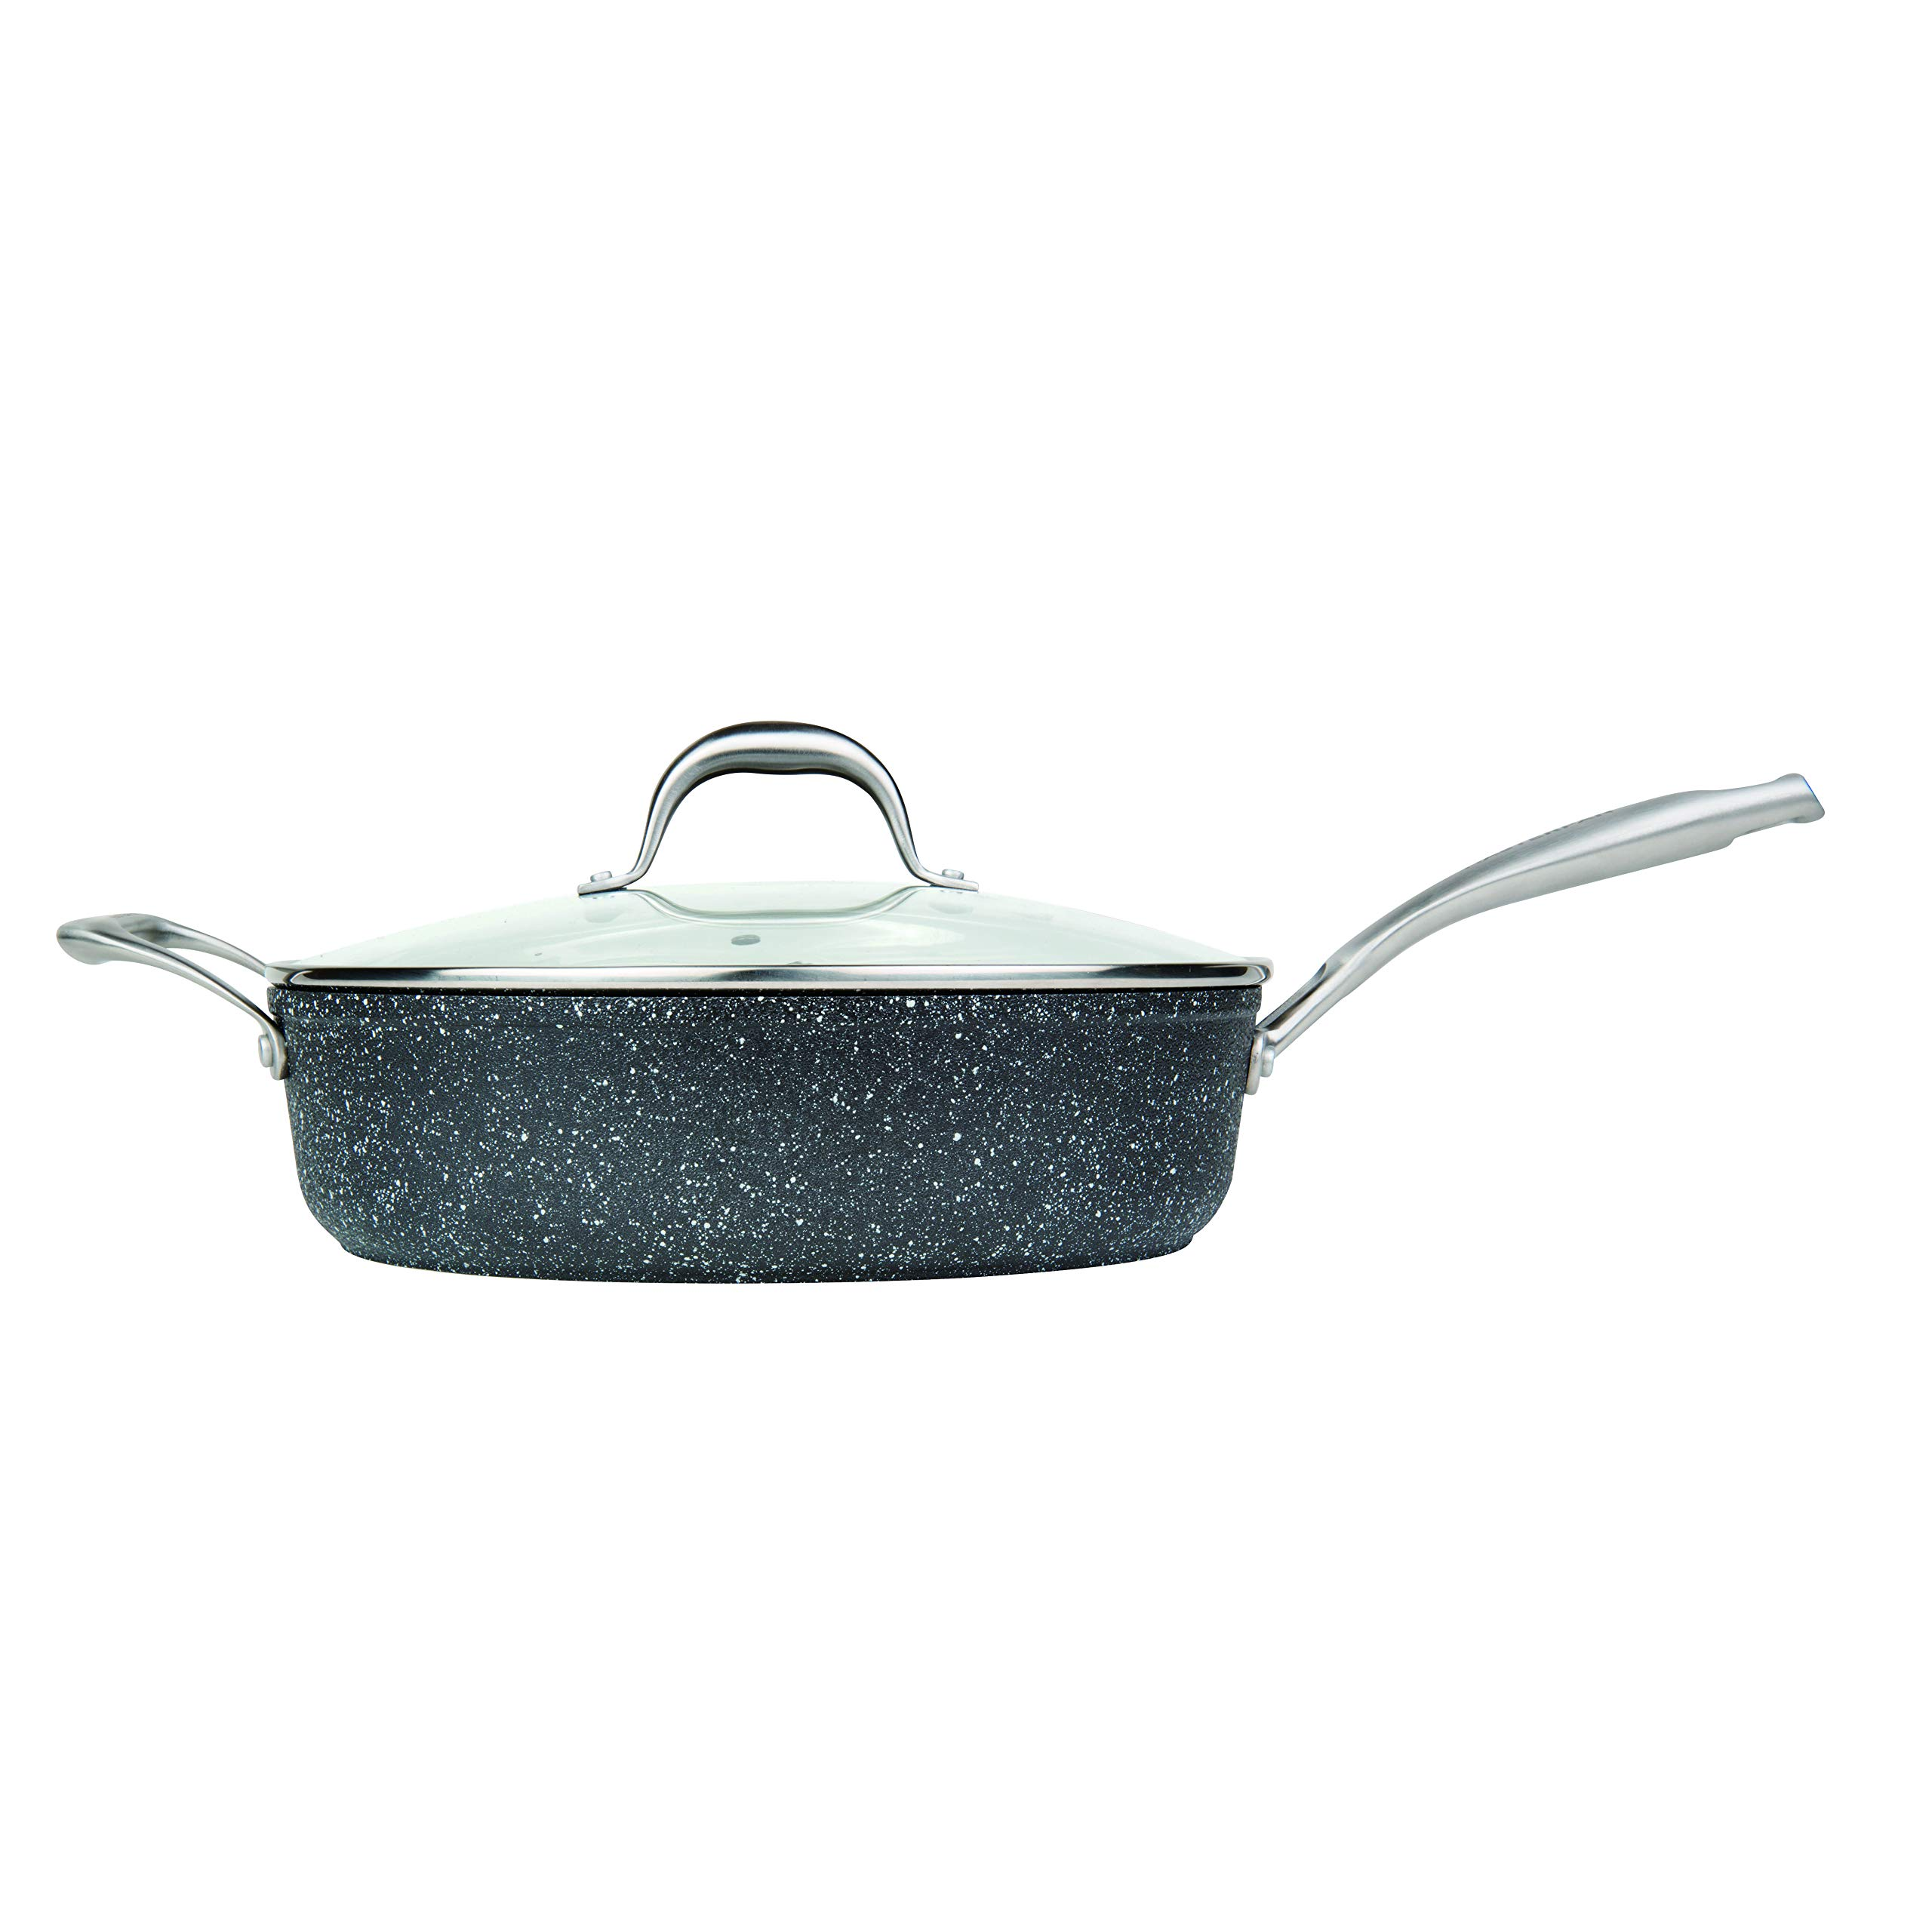 MasterPan Granite Ultra Non-Stick Cast Aluminum Sauté Pan with Glass Lid, Non-stick Frying Pan Omelette Pan, 11'', Grey, MP-134 by Master Pan (Image #4)